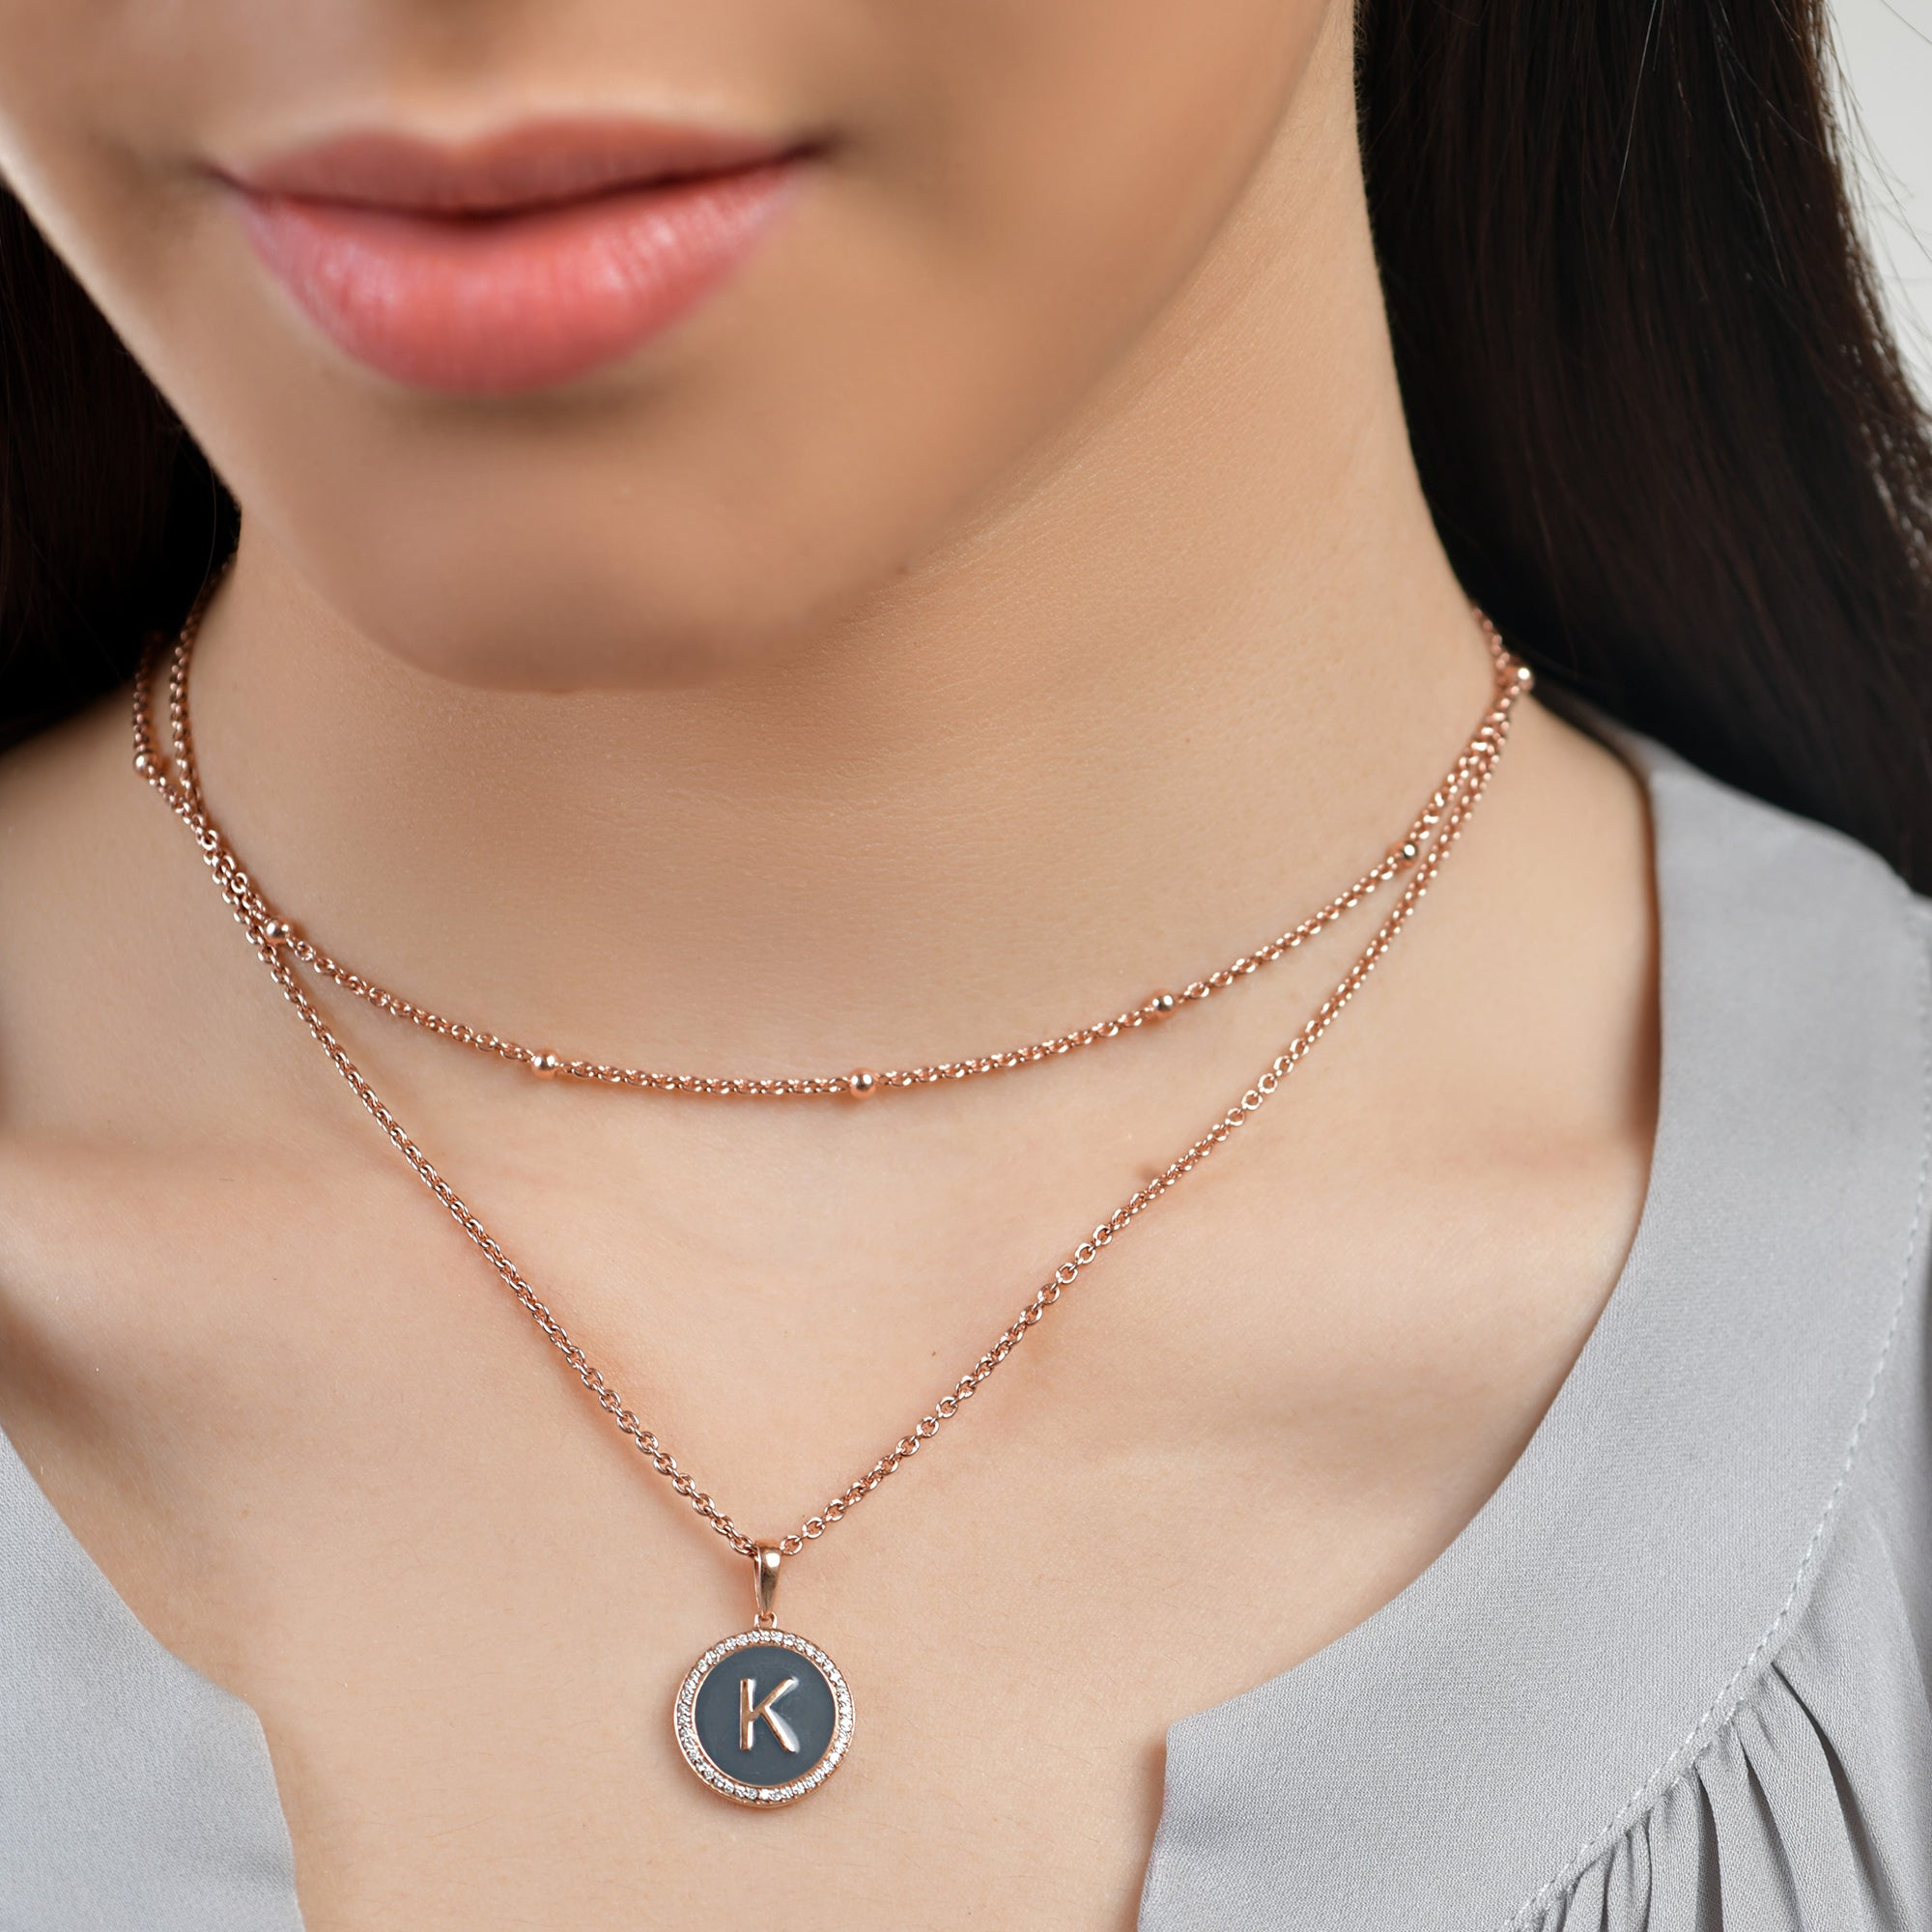 Personalised Grey Enamel Initial Diamond Chain Pendant